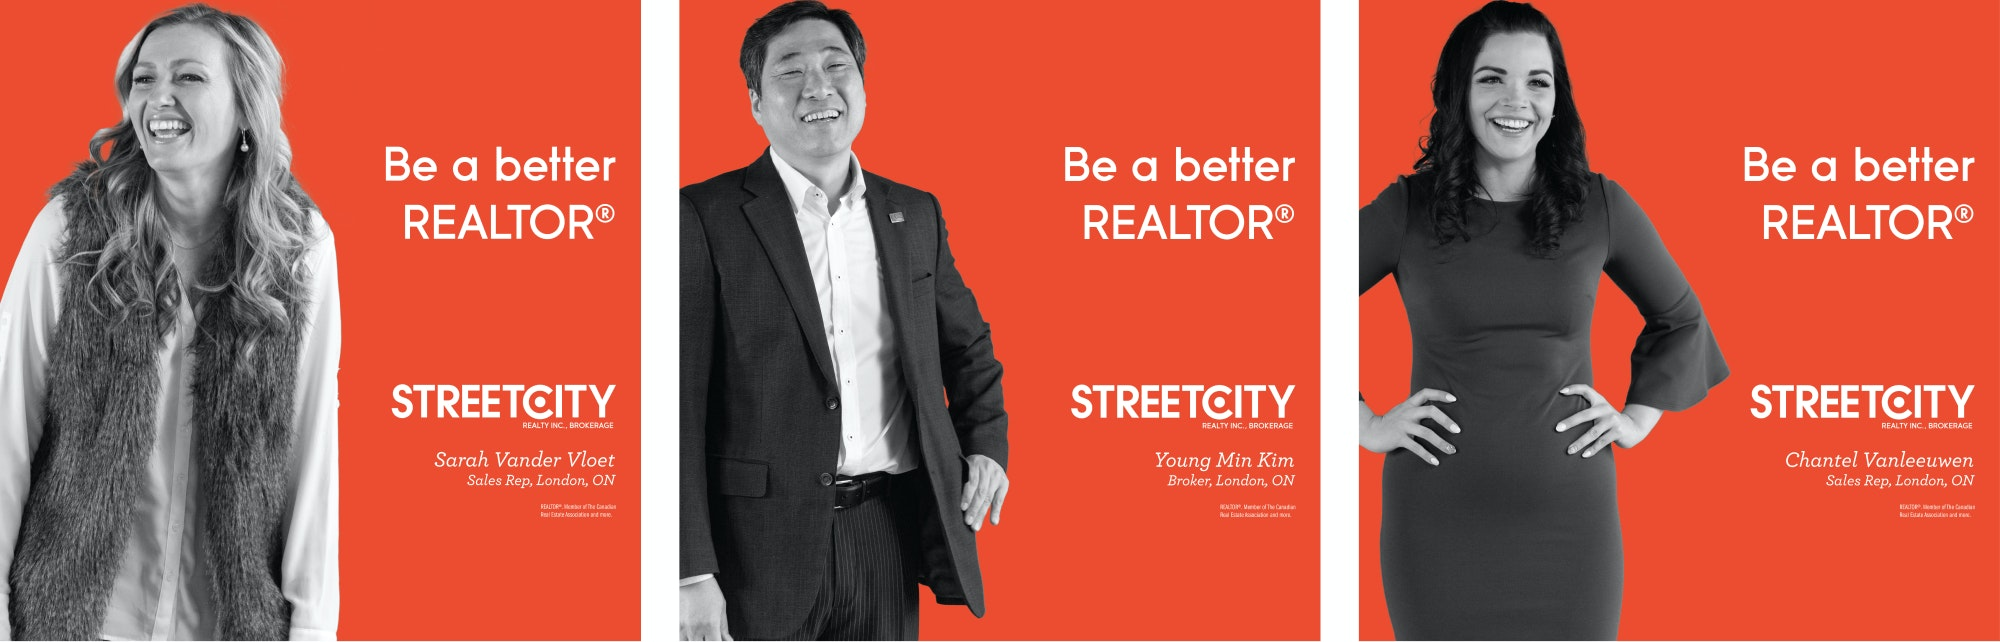 Three advertisements showing realtors and their testimonials